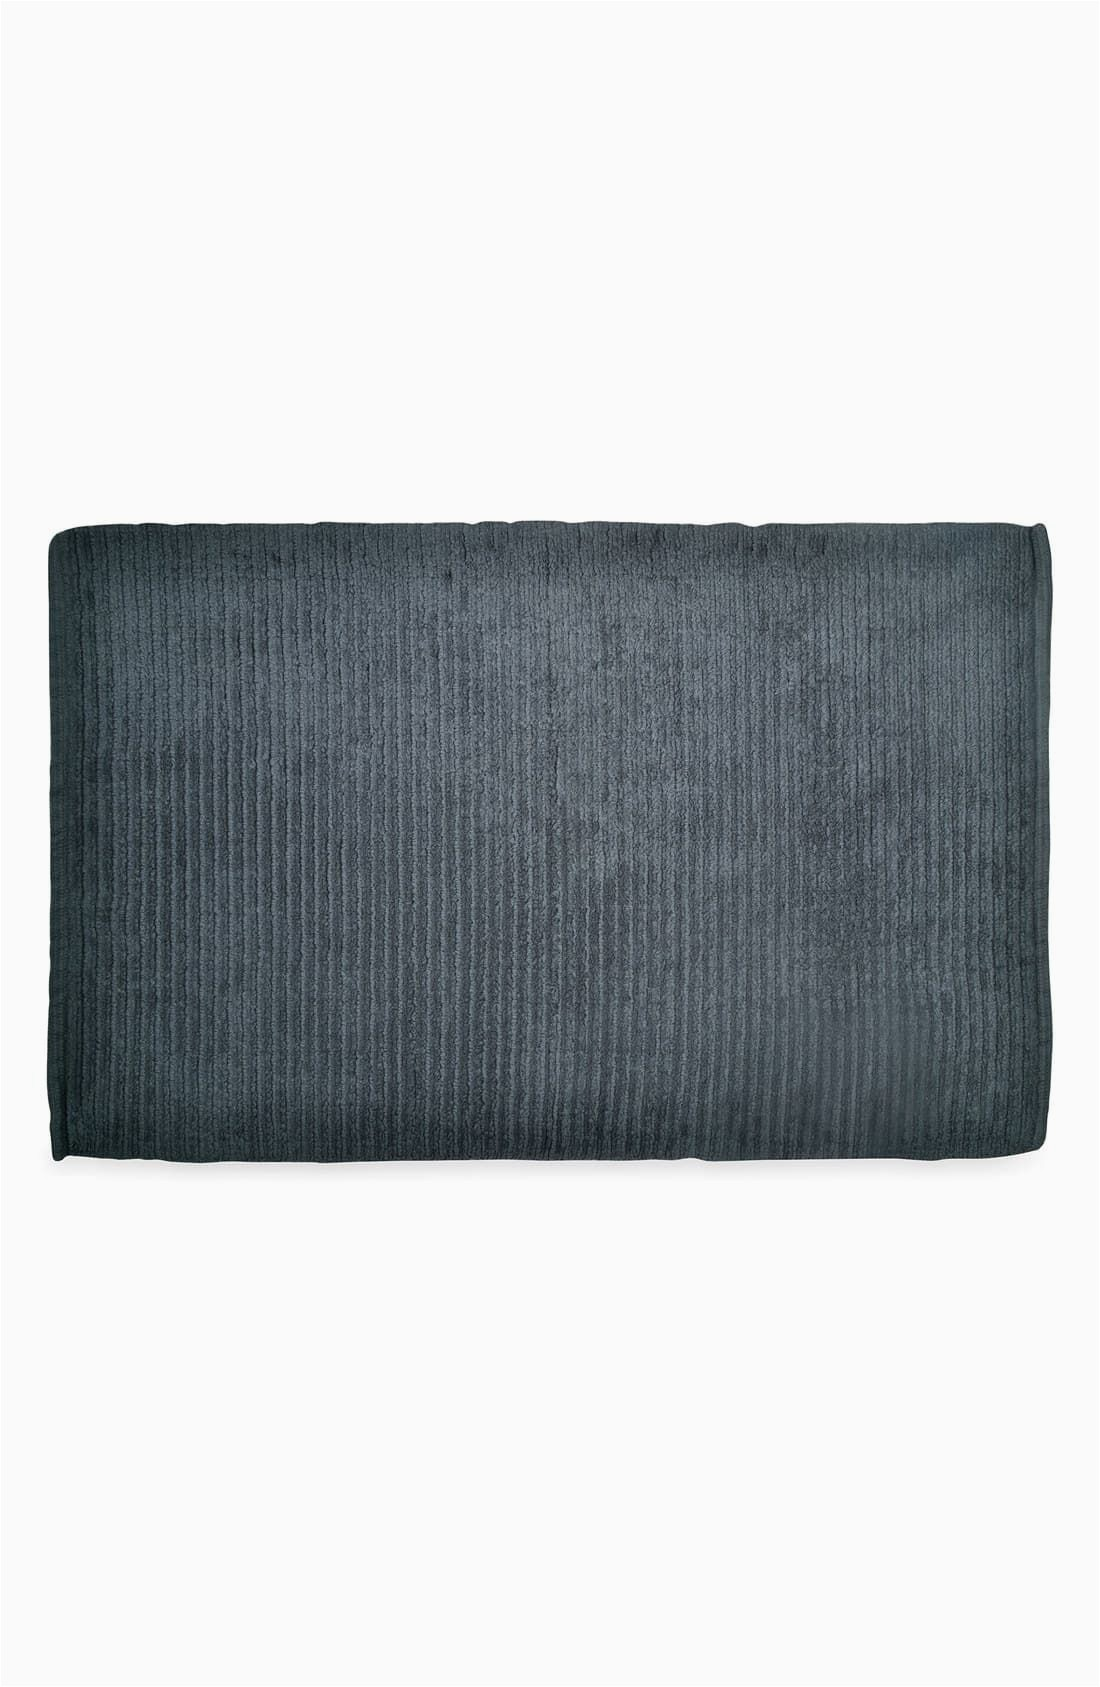 Dkny Mercer Bath Rug Dkny Mercer Bath Rug